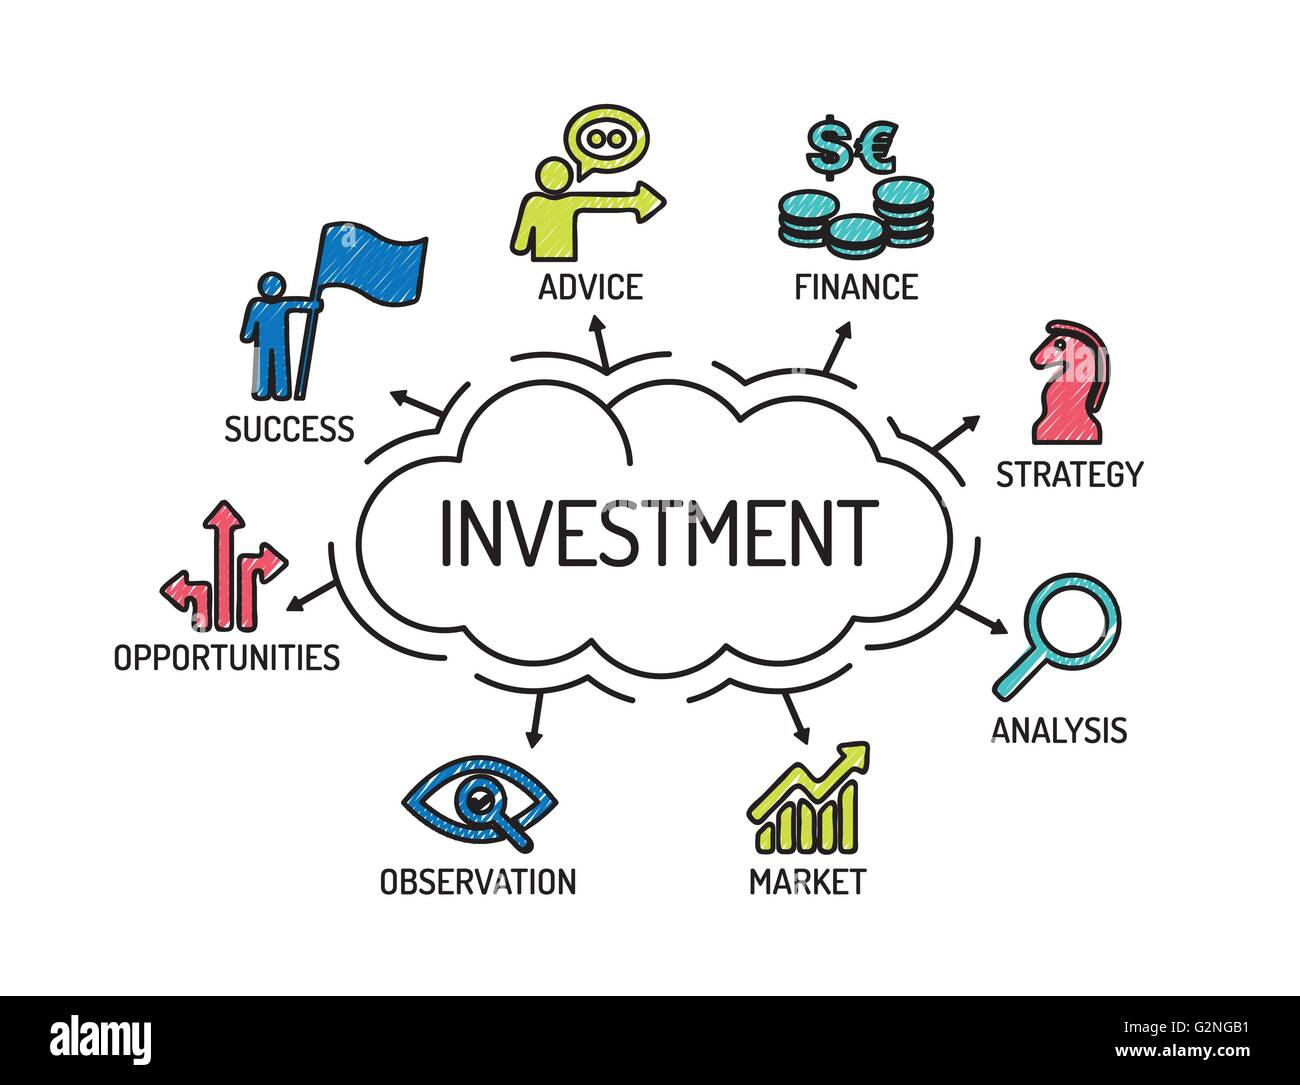 Investment. Chart with keywords and icons. Sketch - Stock Image